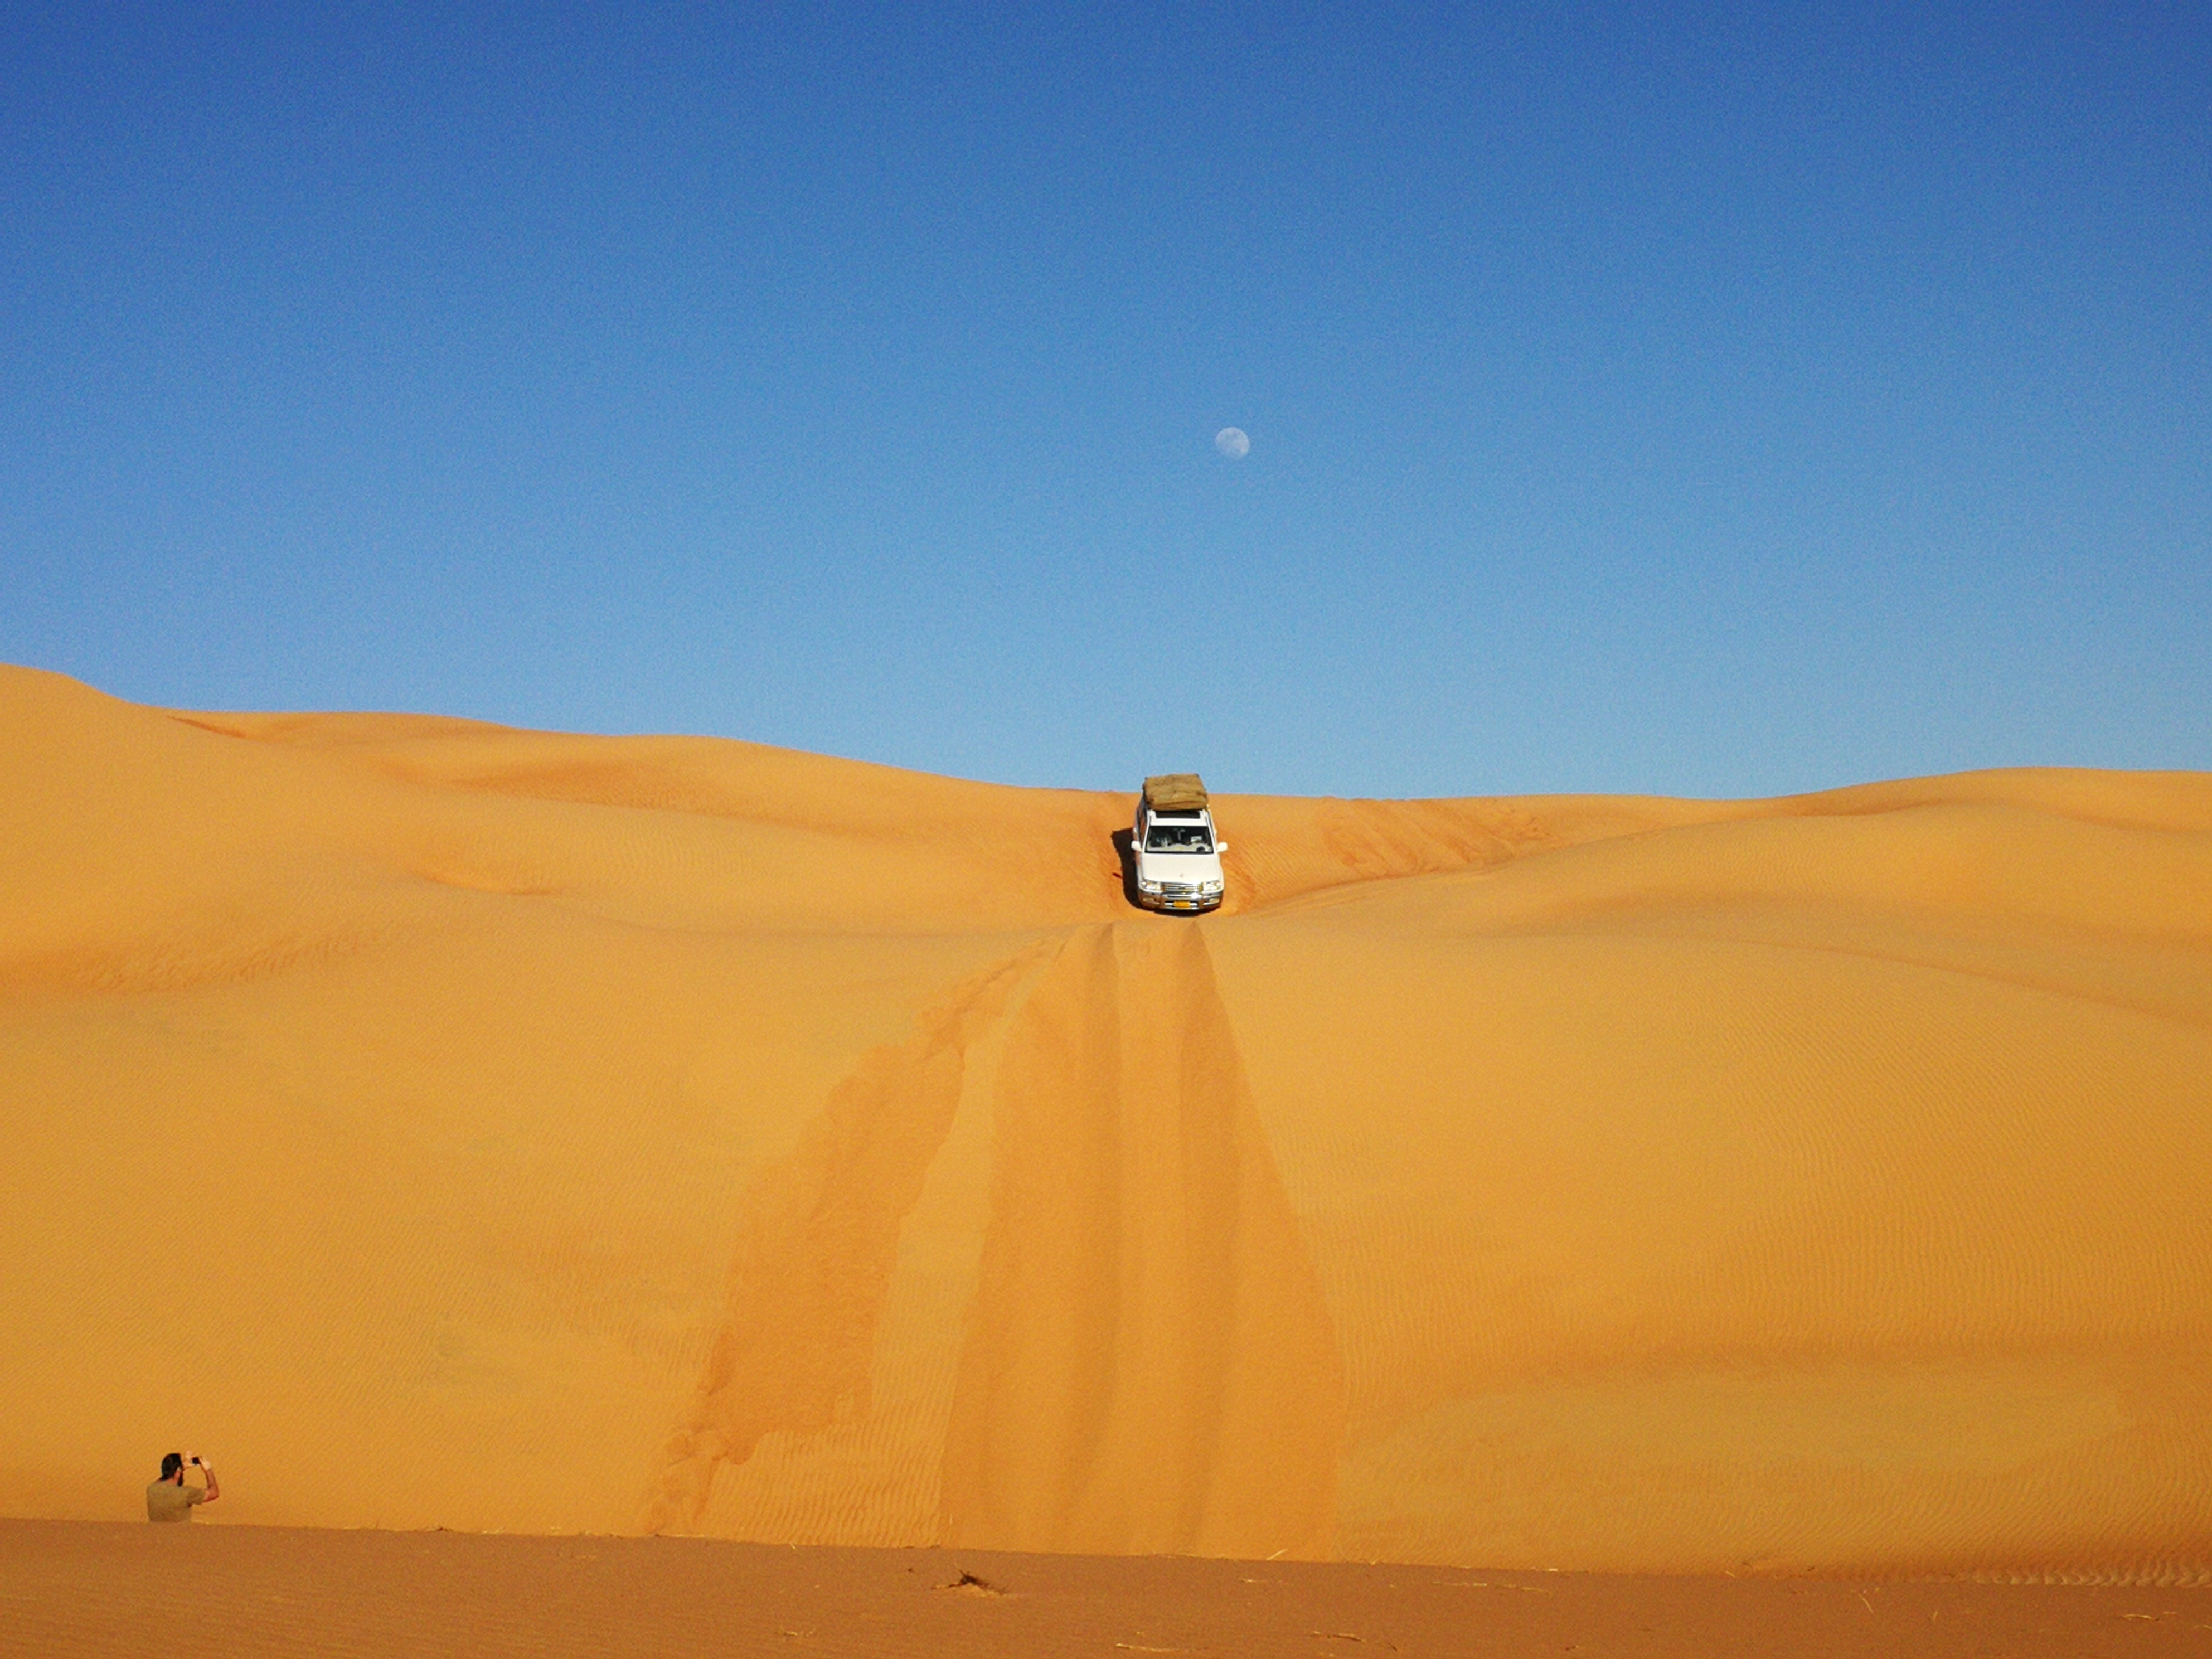 Destinazioni_Paesi Arabi_Oman_Deserto Rub Al Khali_davide guglielmi_contemporary art of travel